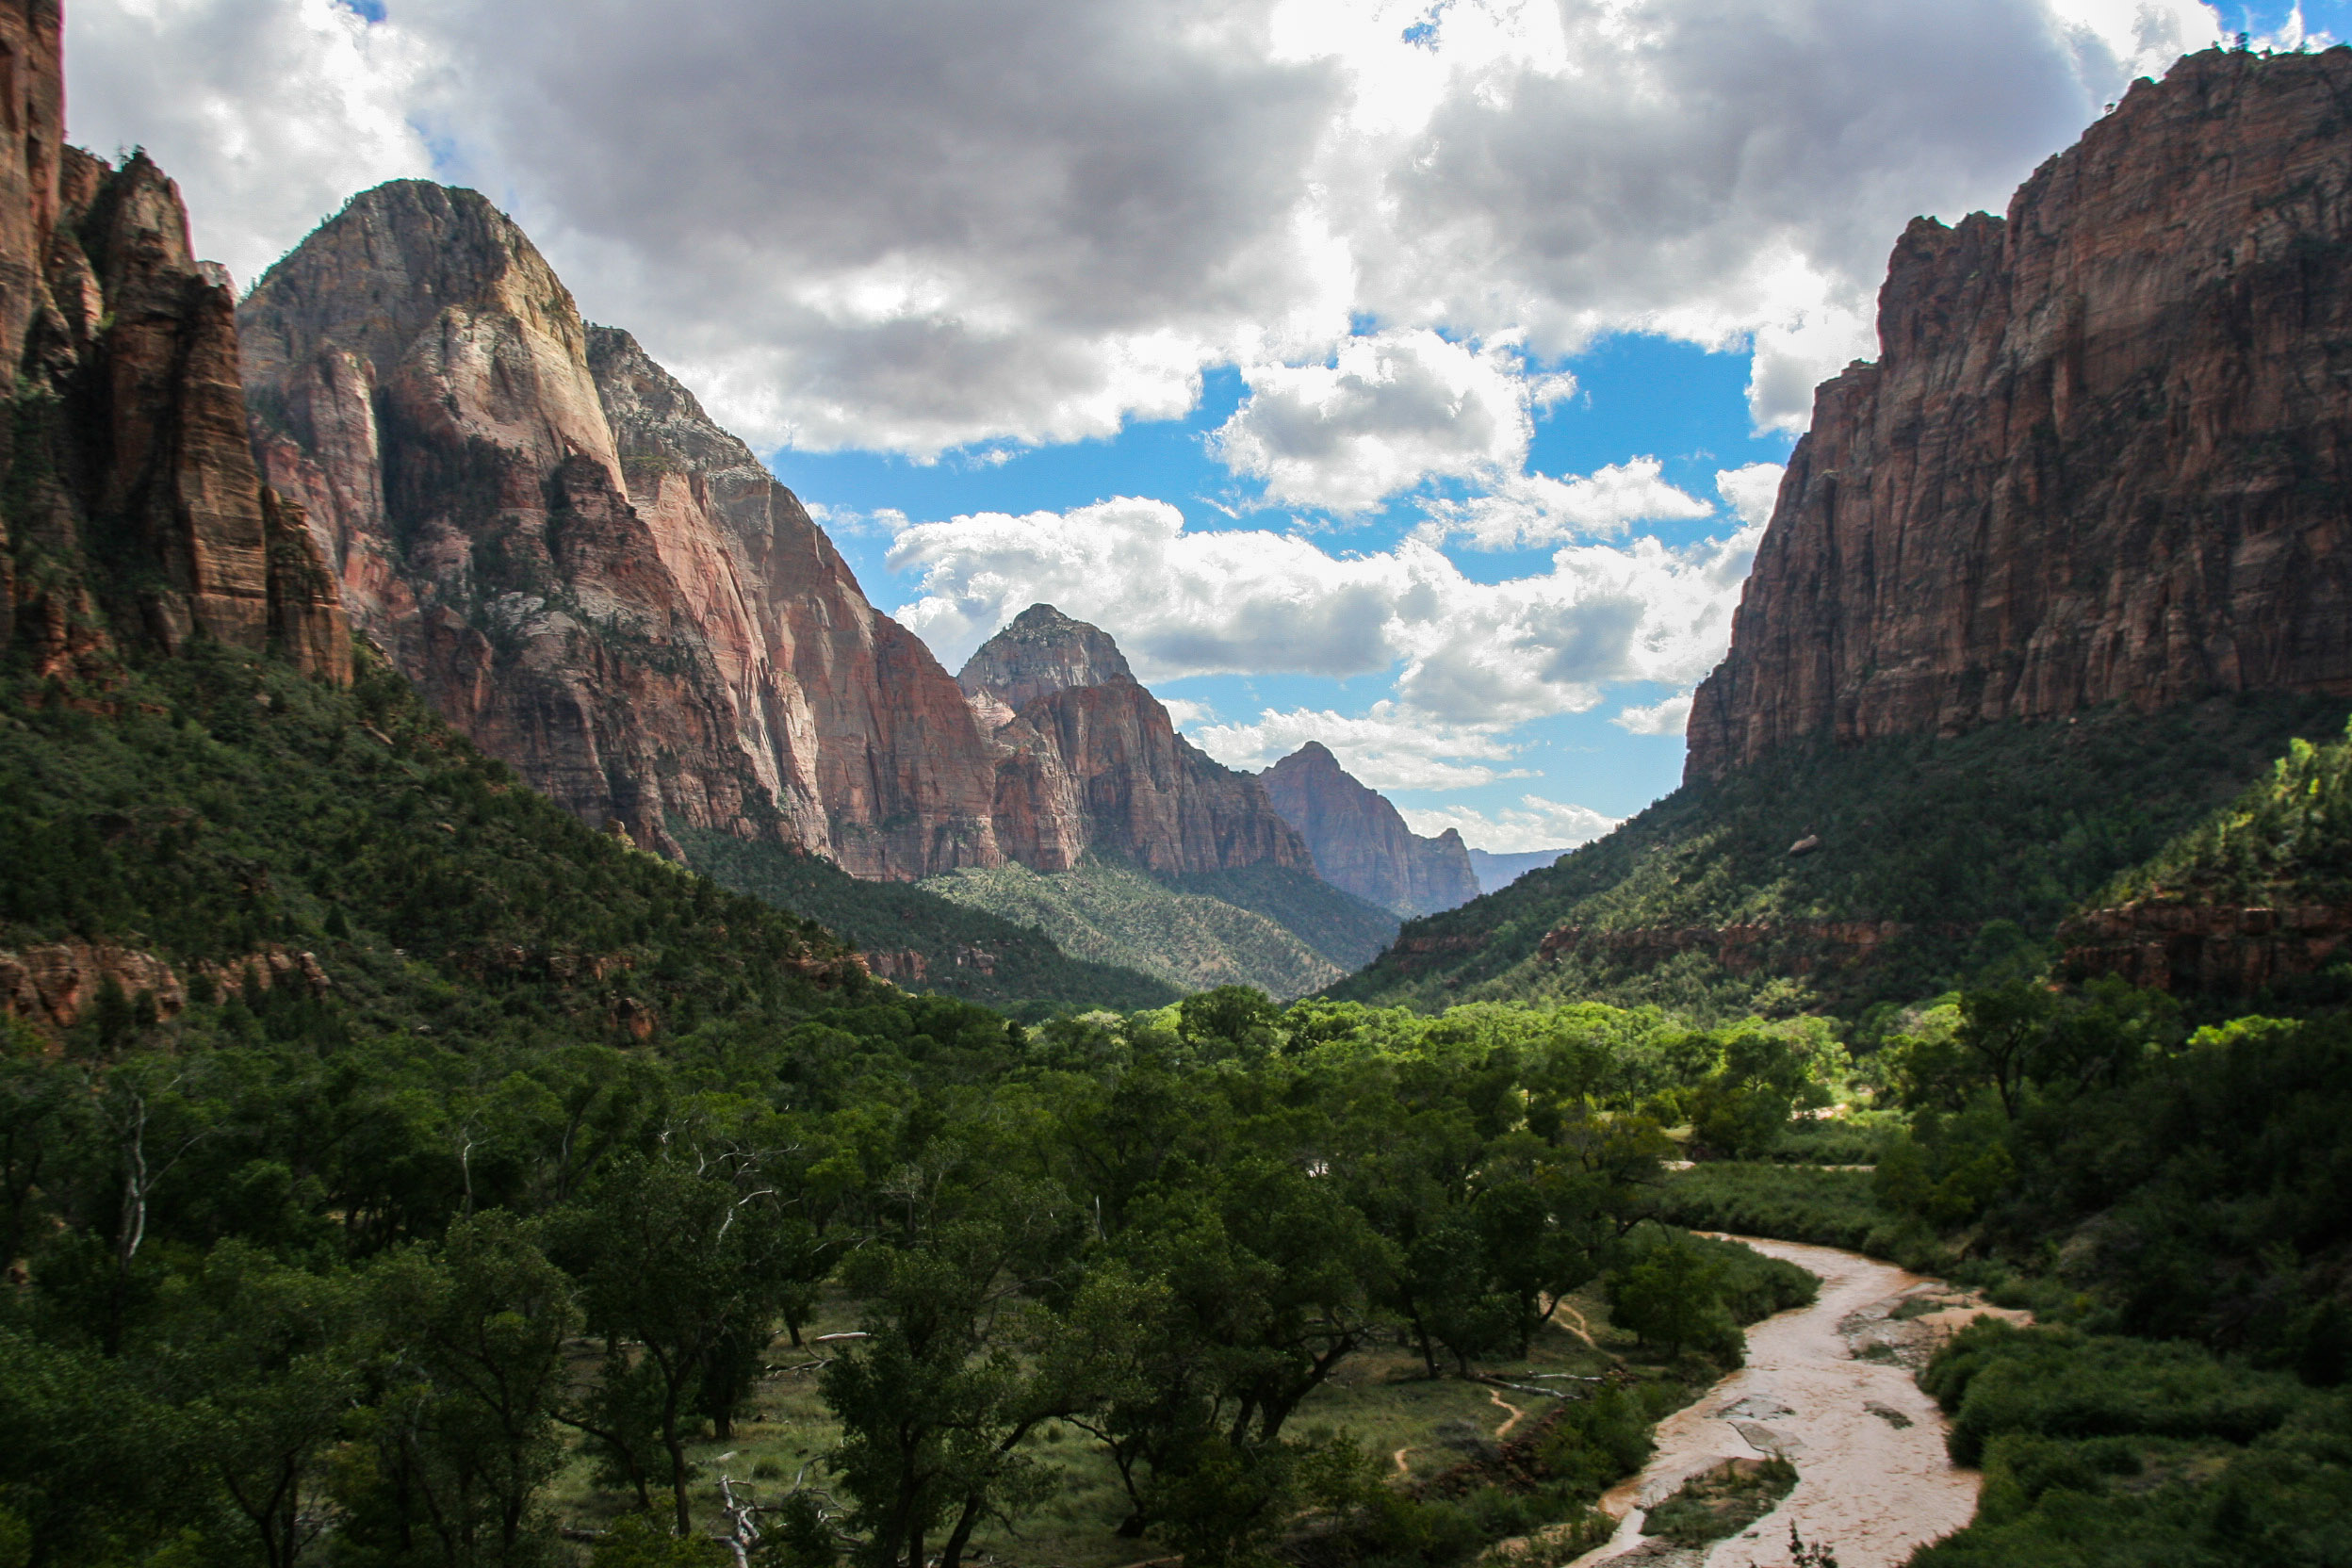 Had the privilege to explore some of the most majestic places in the world early this Fall season.  Here is a capture from our time in Zion National Park...no words, just a gaping mouth.